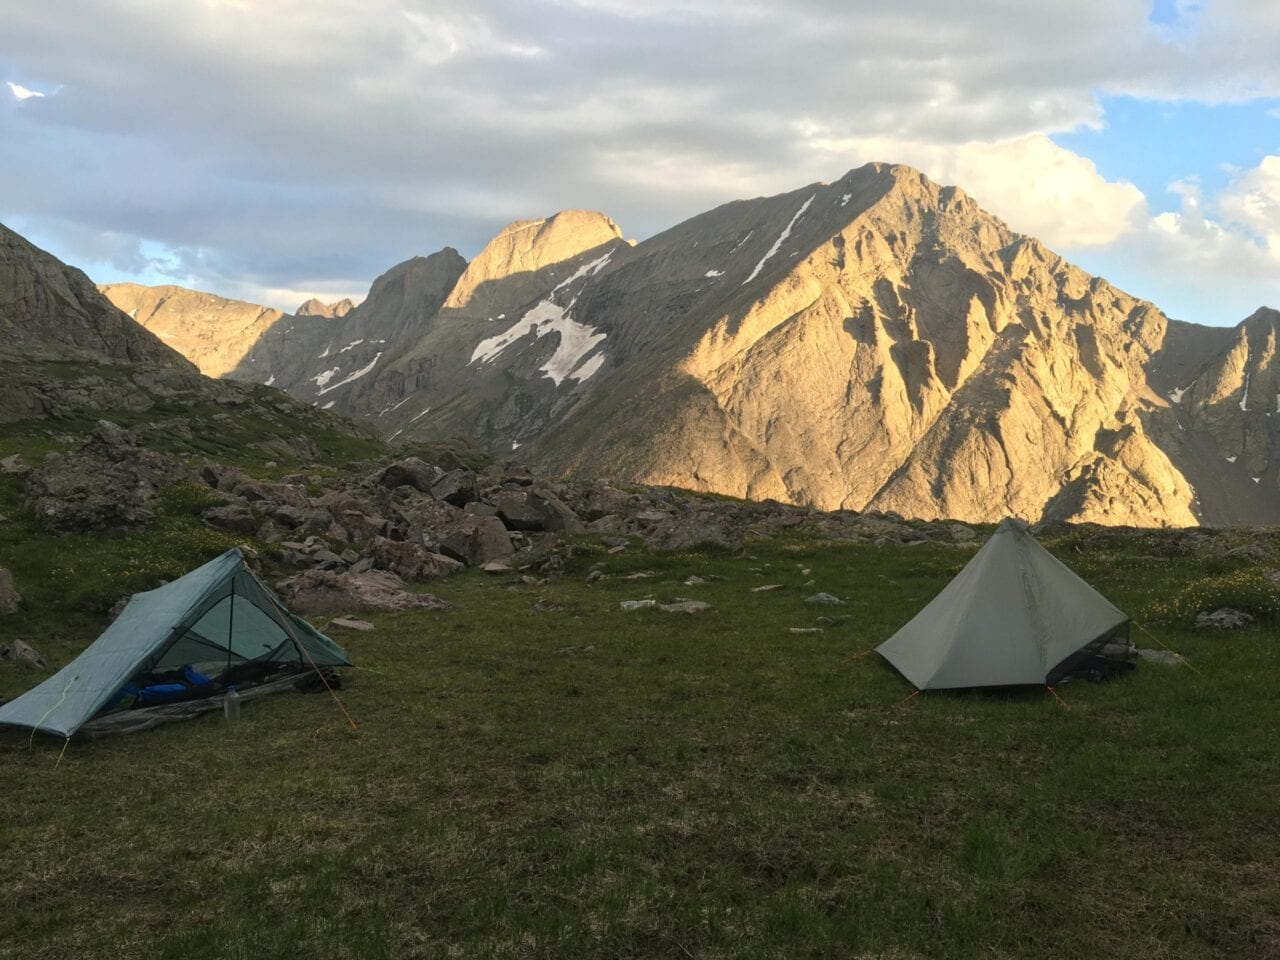 Two tents sit in a small field in front of towering ridgelines.